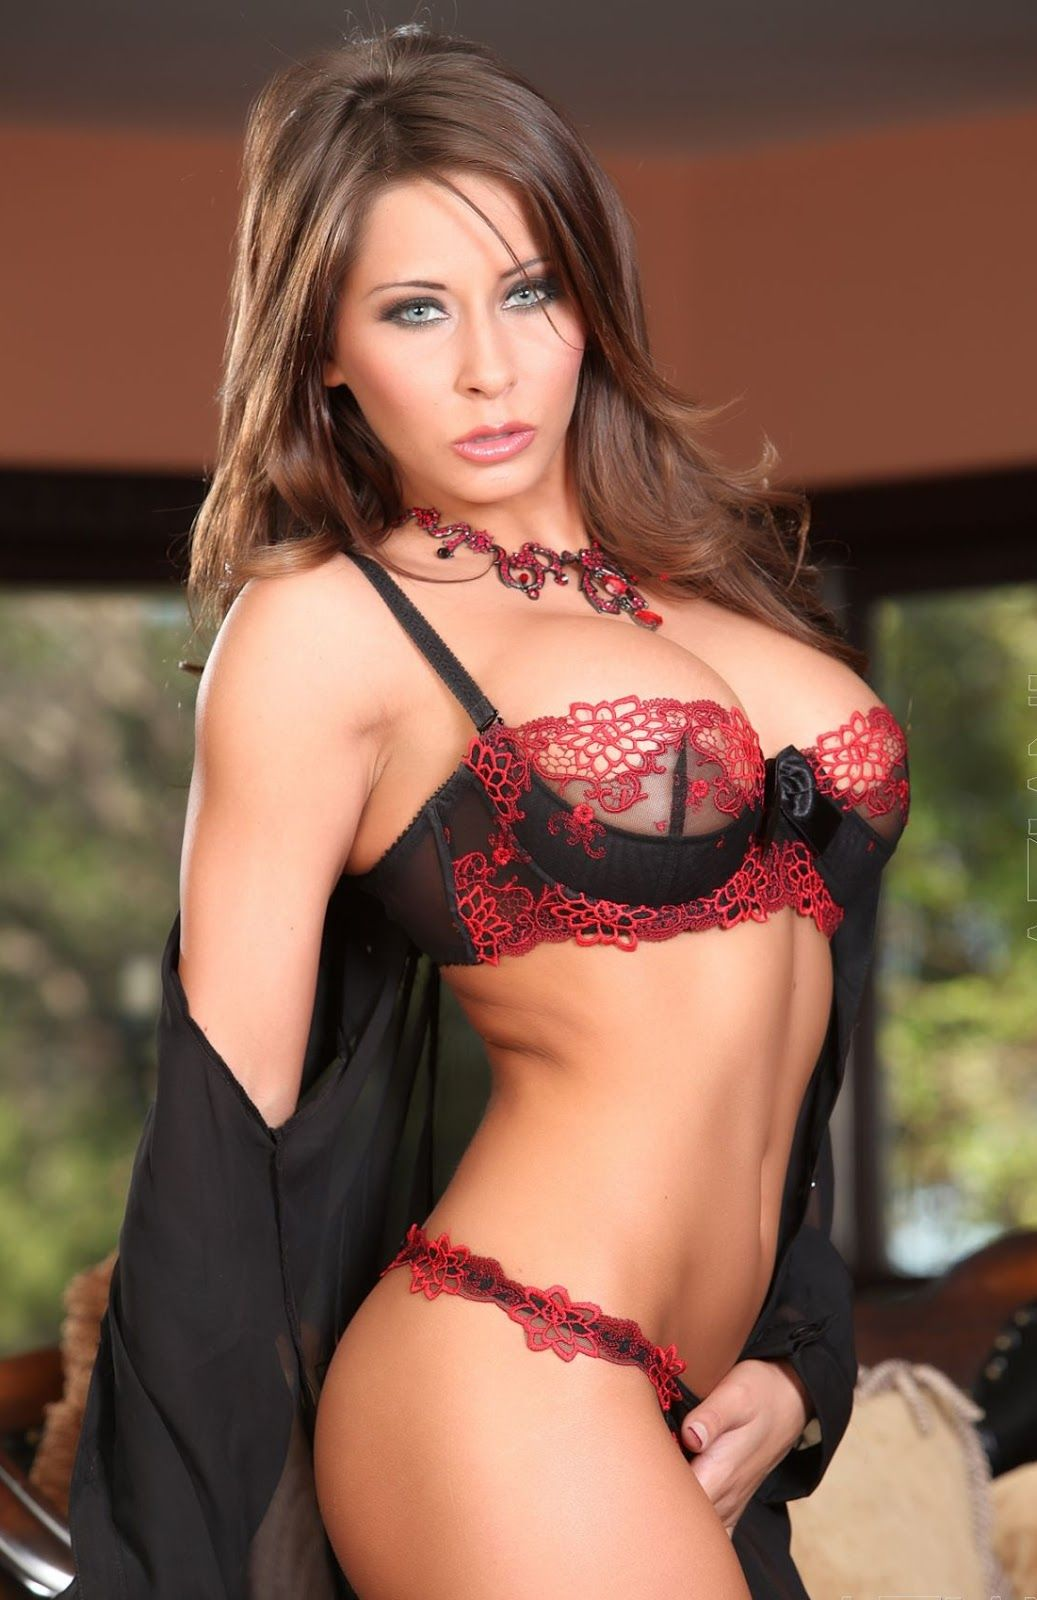 madison ivy instagrammadison ivy tech bookstore, madison ivy tech community college, madison ivy instagram